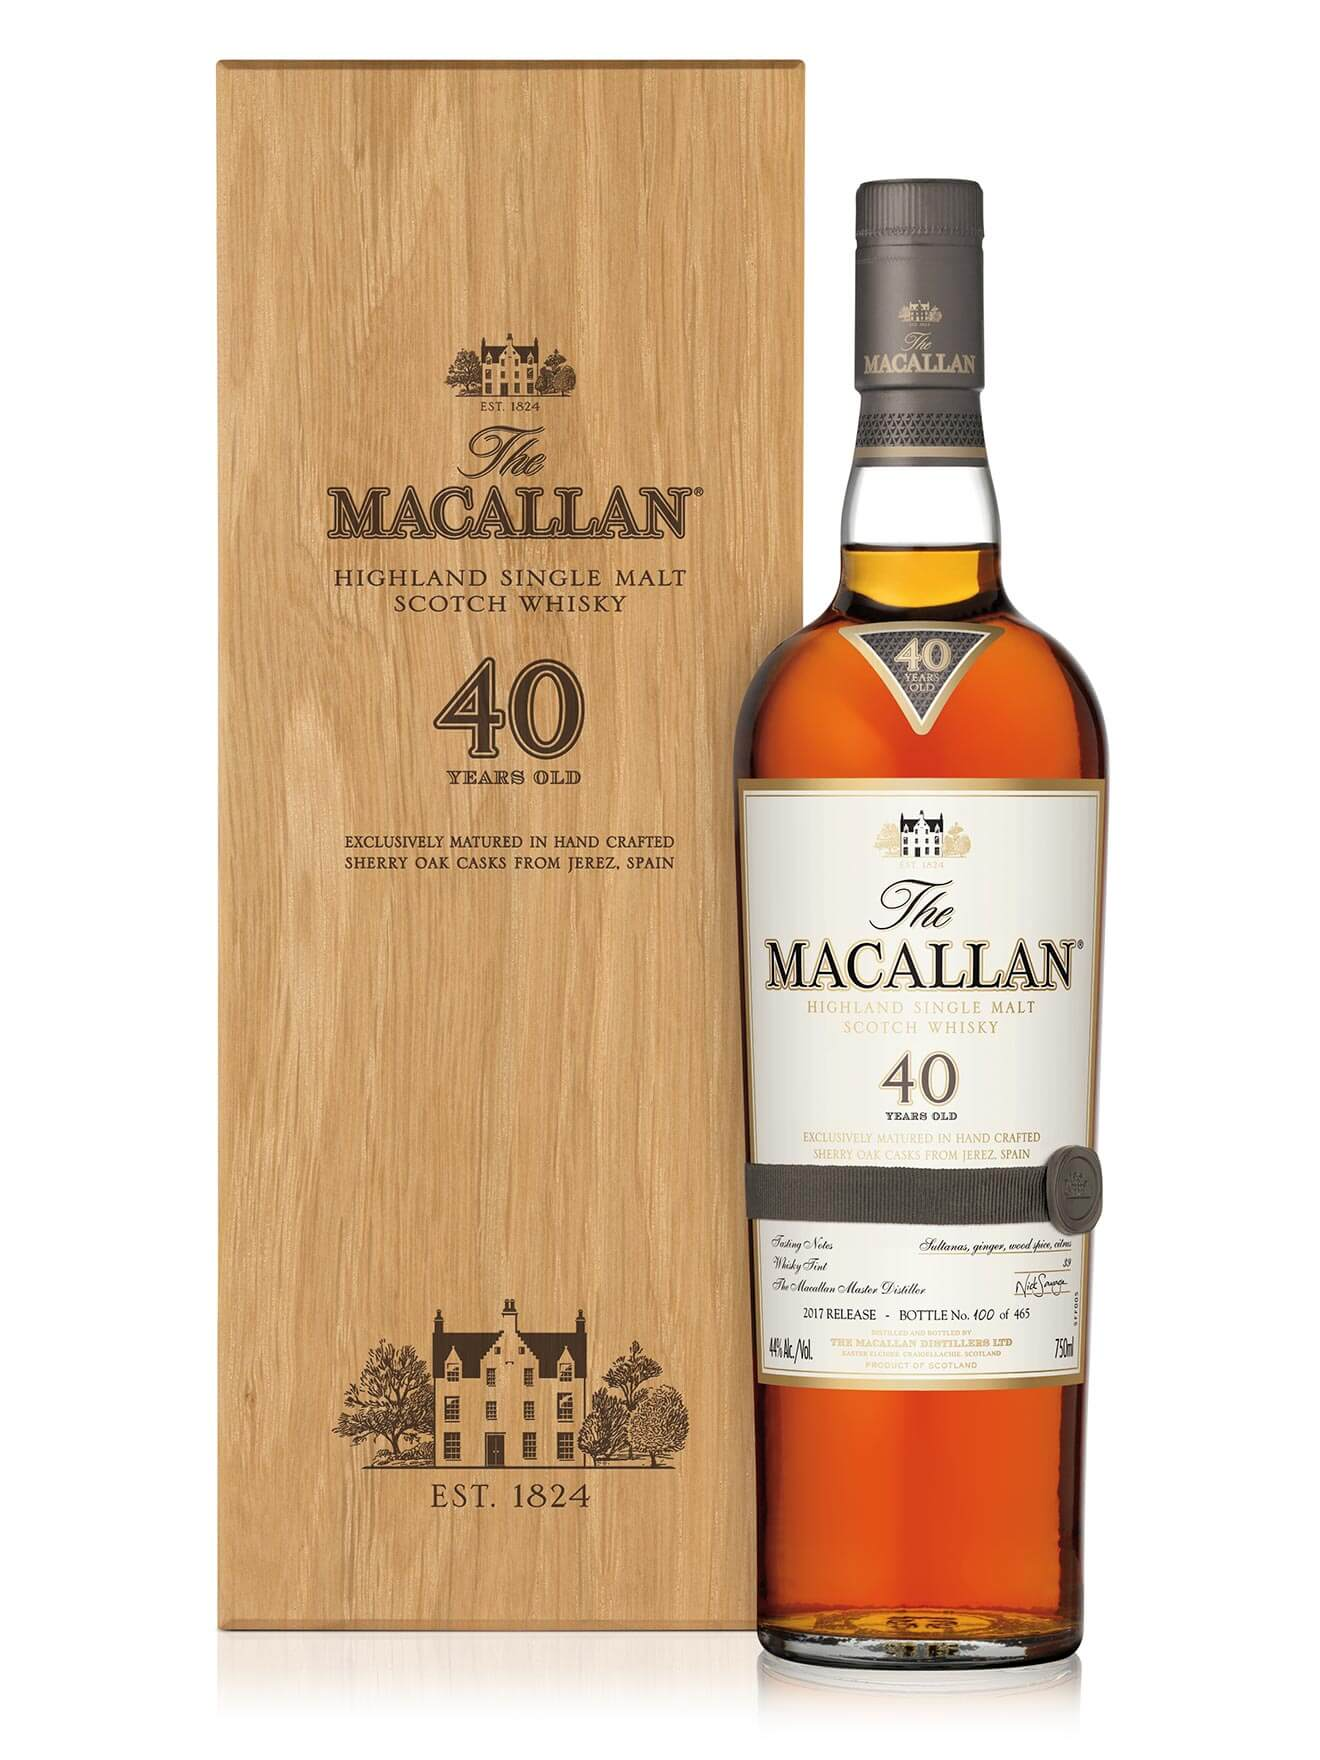 The Macallan Sherry Oak 40 Years Old Rare Single Malt, bottle and package on white